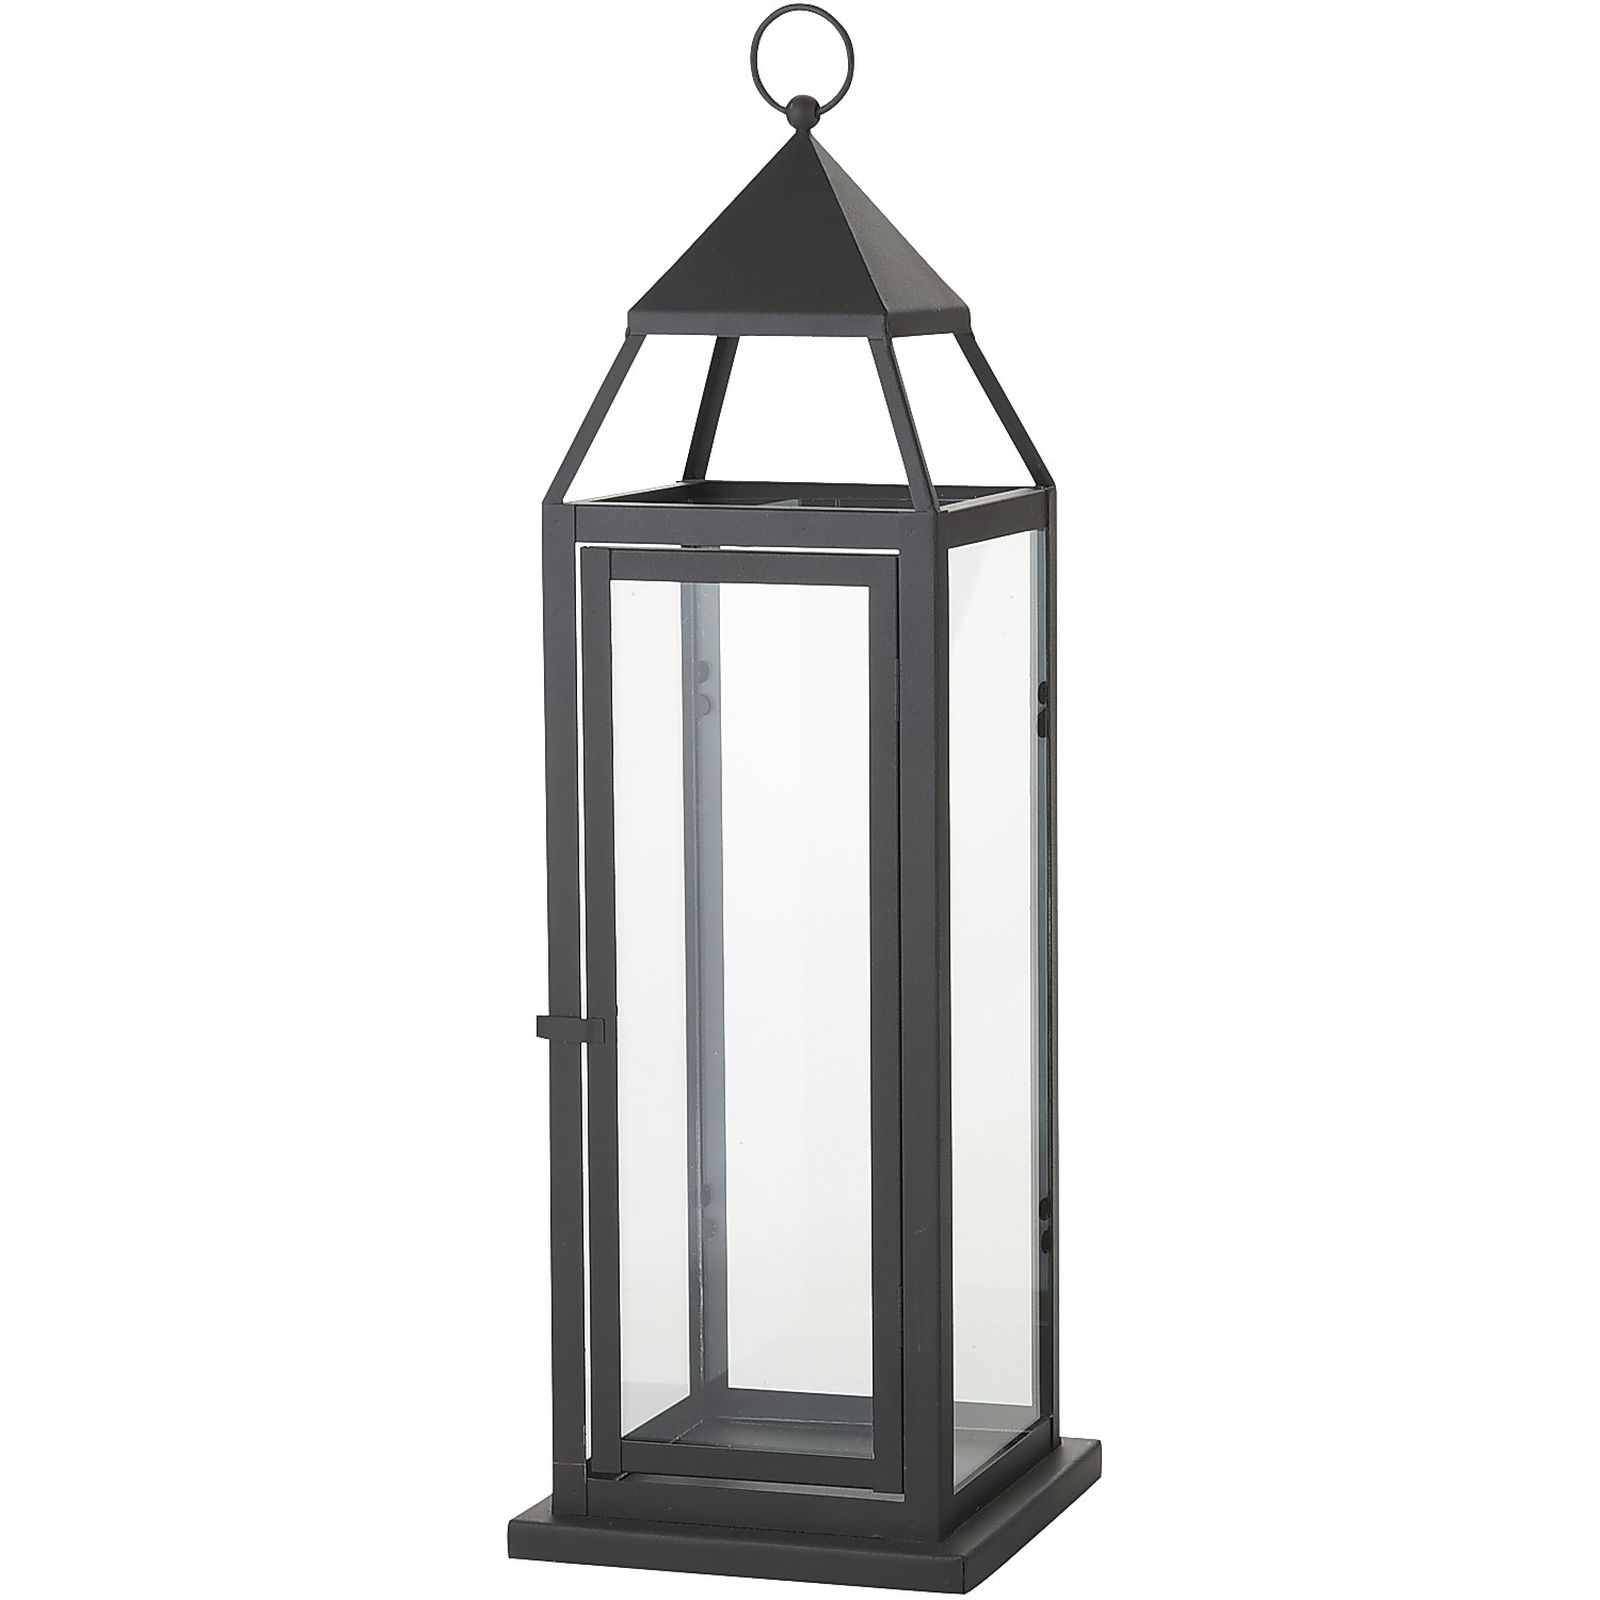 Indoor Outdoor Lanterns Lamp Post Solar Candles Door Ideas Lighting Intended For Well Liked Tall Outdoor Lanterns (Gallery 3 of 20)